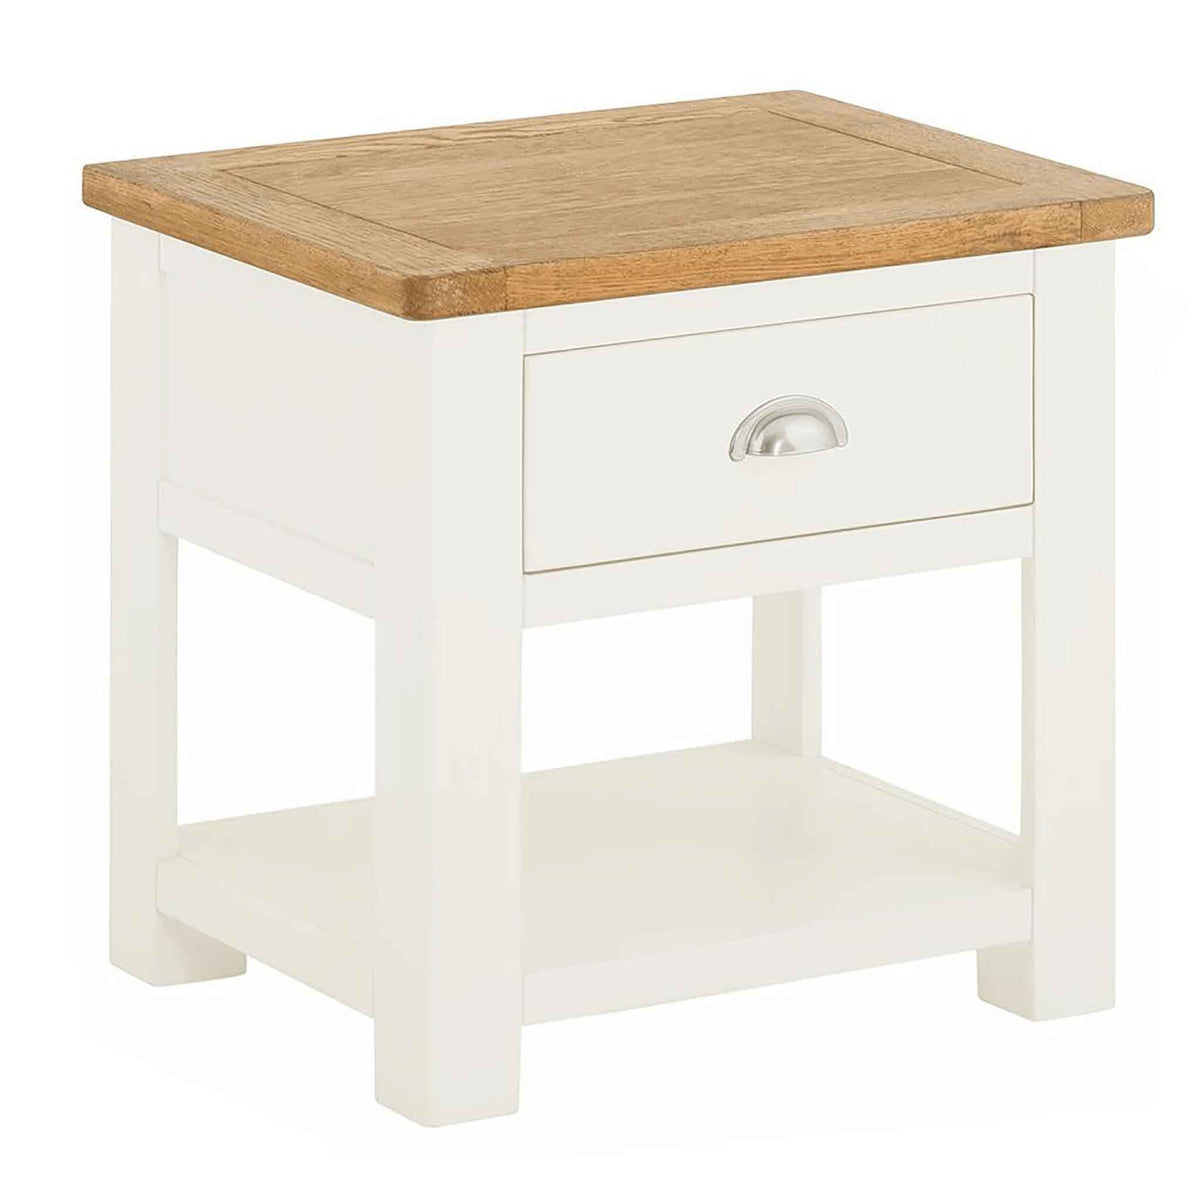 The Padstow White Solid Wood Side Table with Oak Top